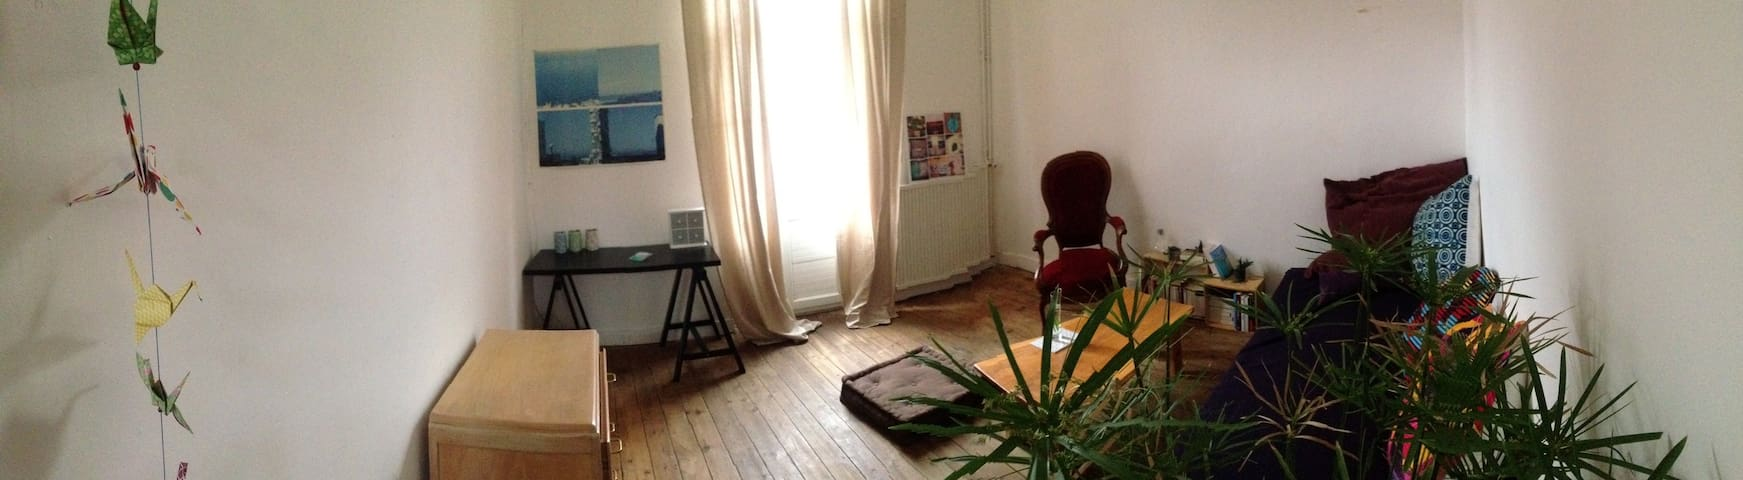 Simple comme chez moi - Angoulême - Wohnung